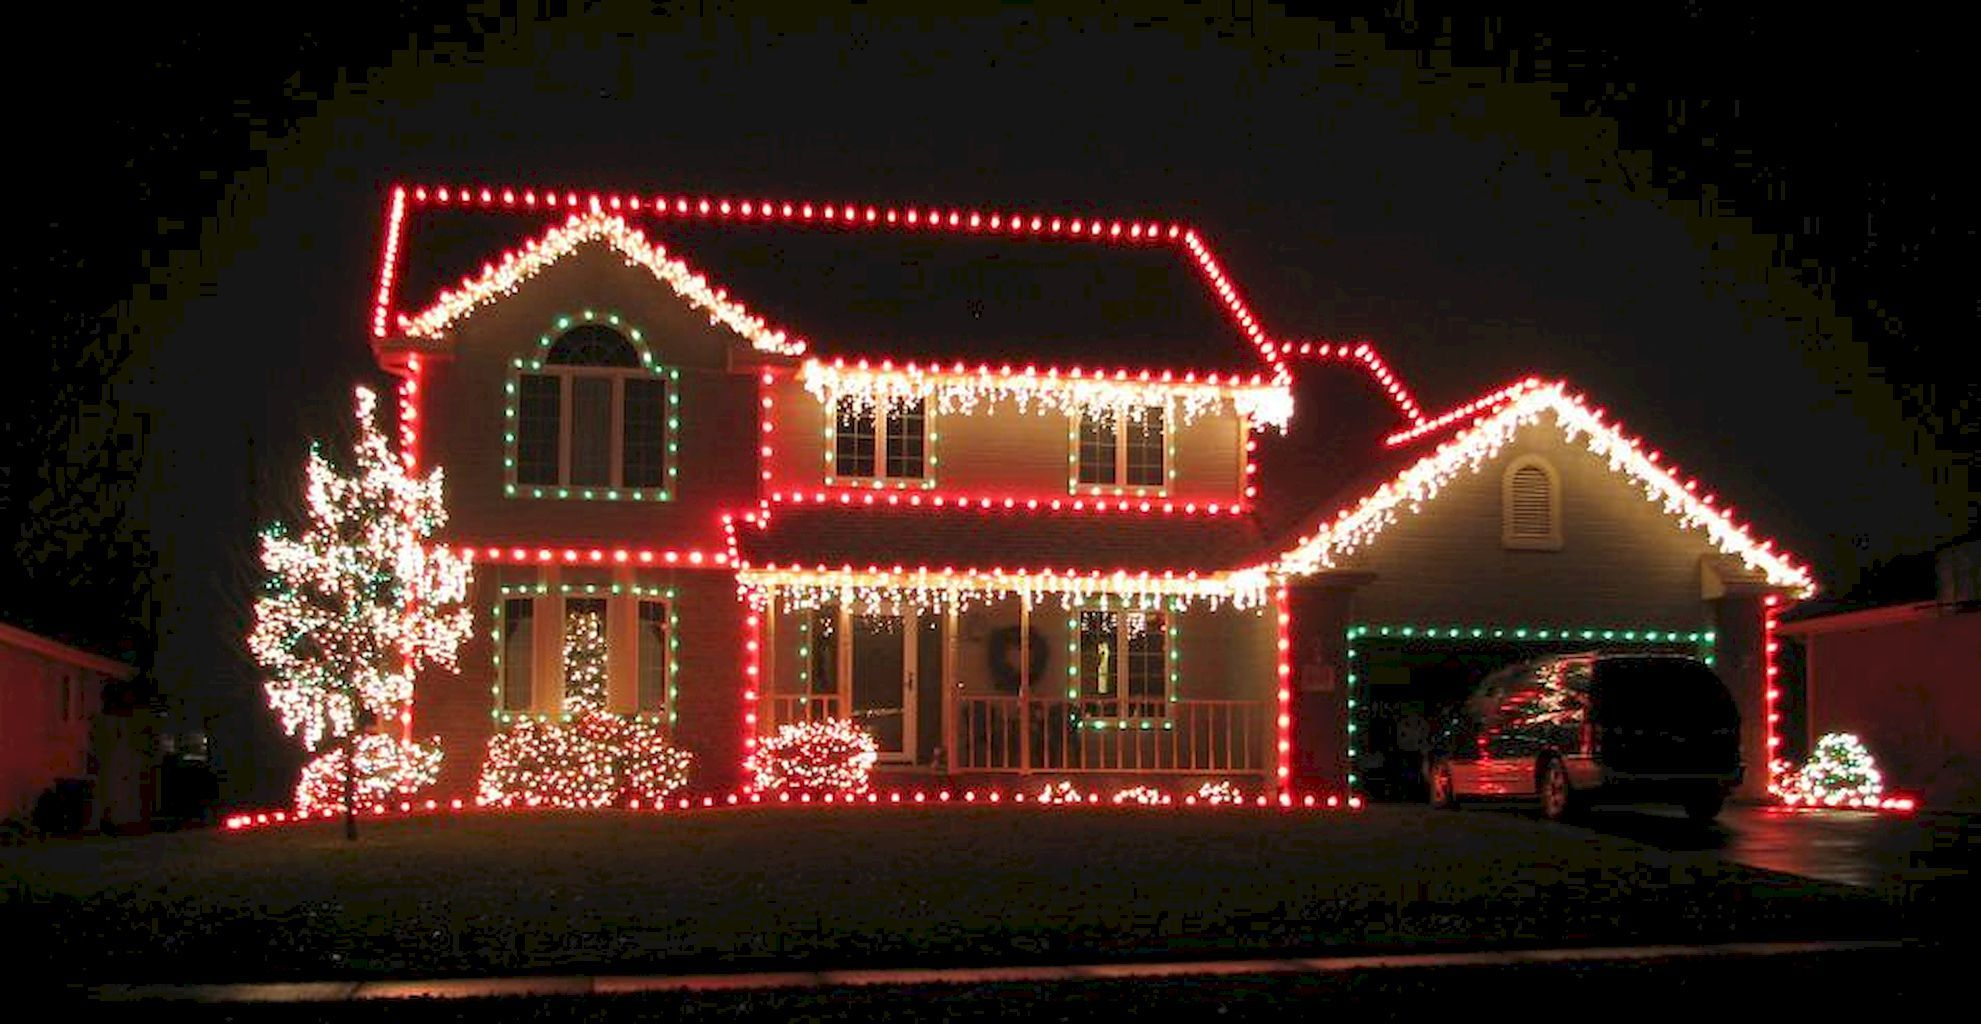 70 Awesome Farmhouse Style Exterior Christmas Lights Decorations Decorar Casa Navidad Navidad Decoracion De Unas